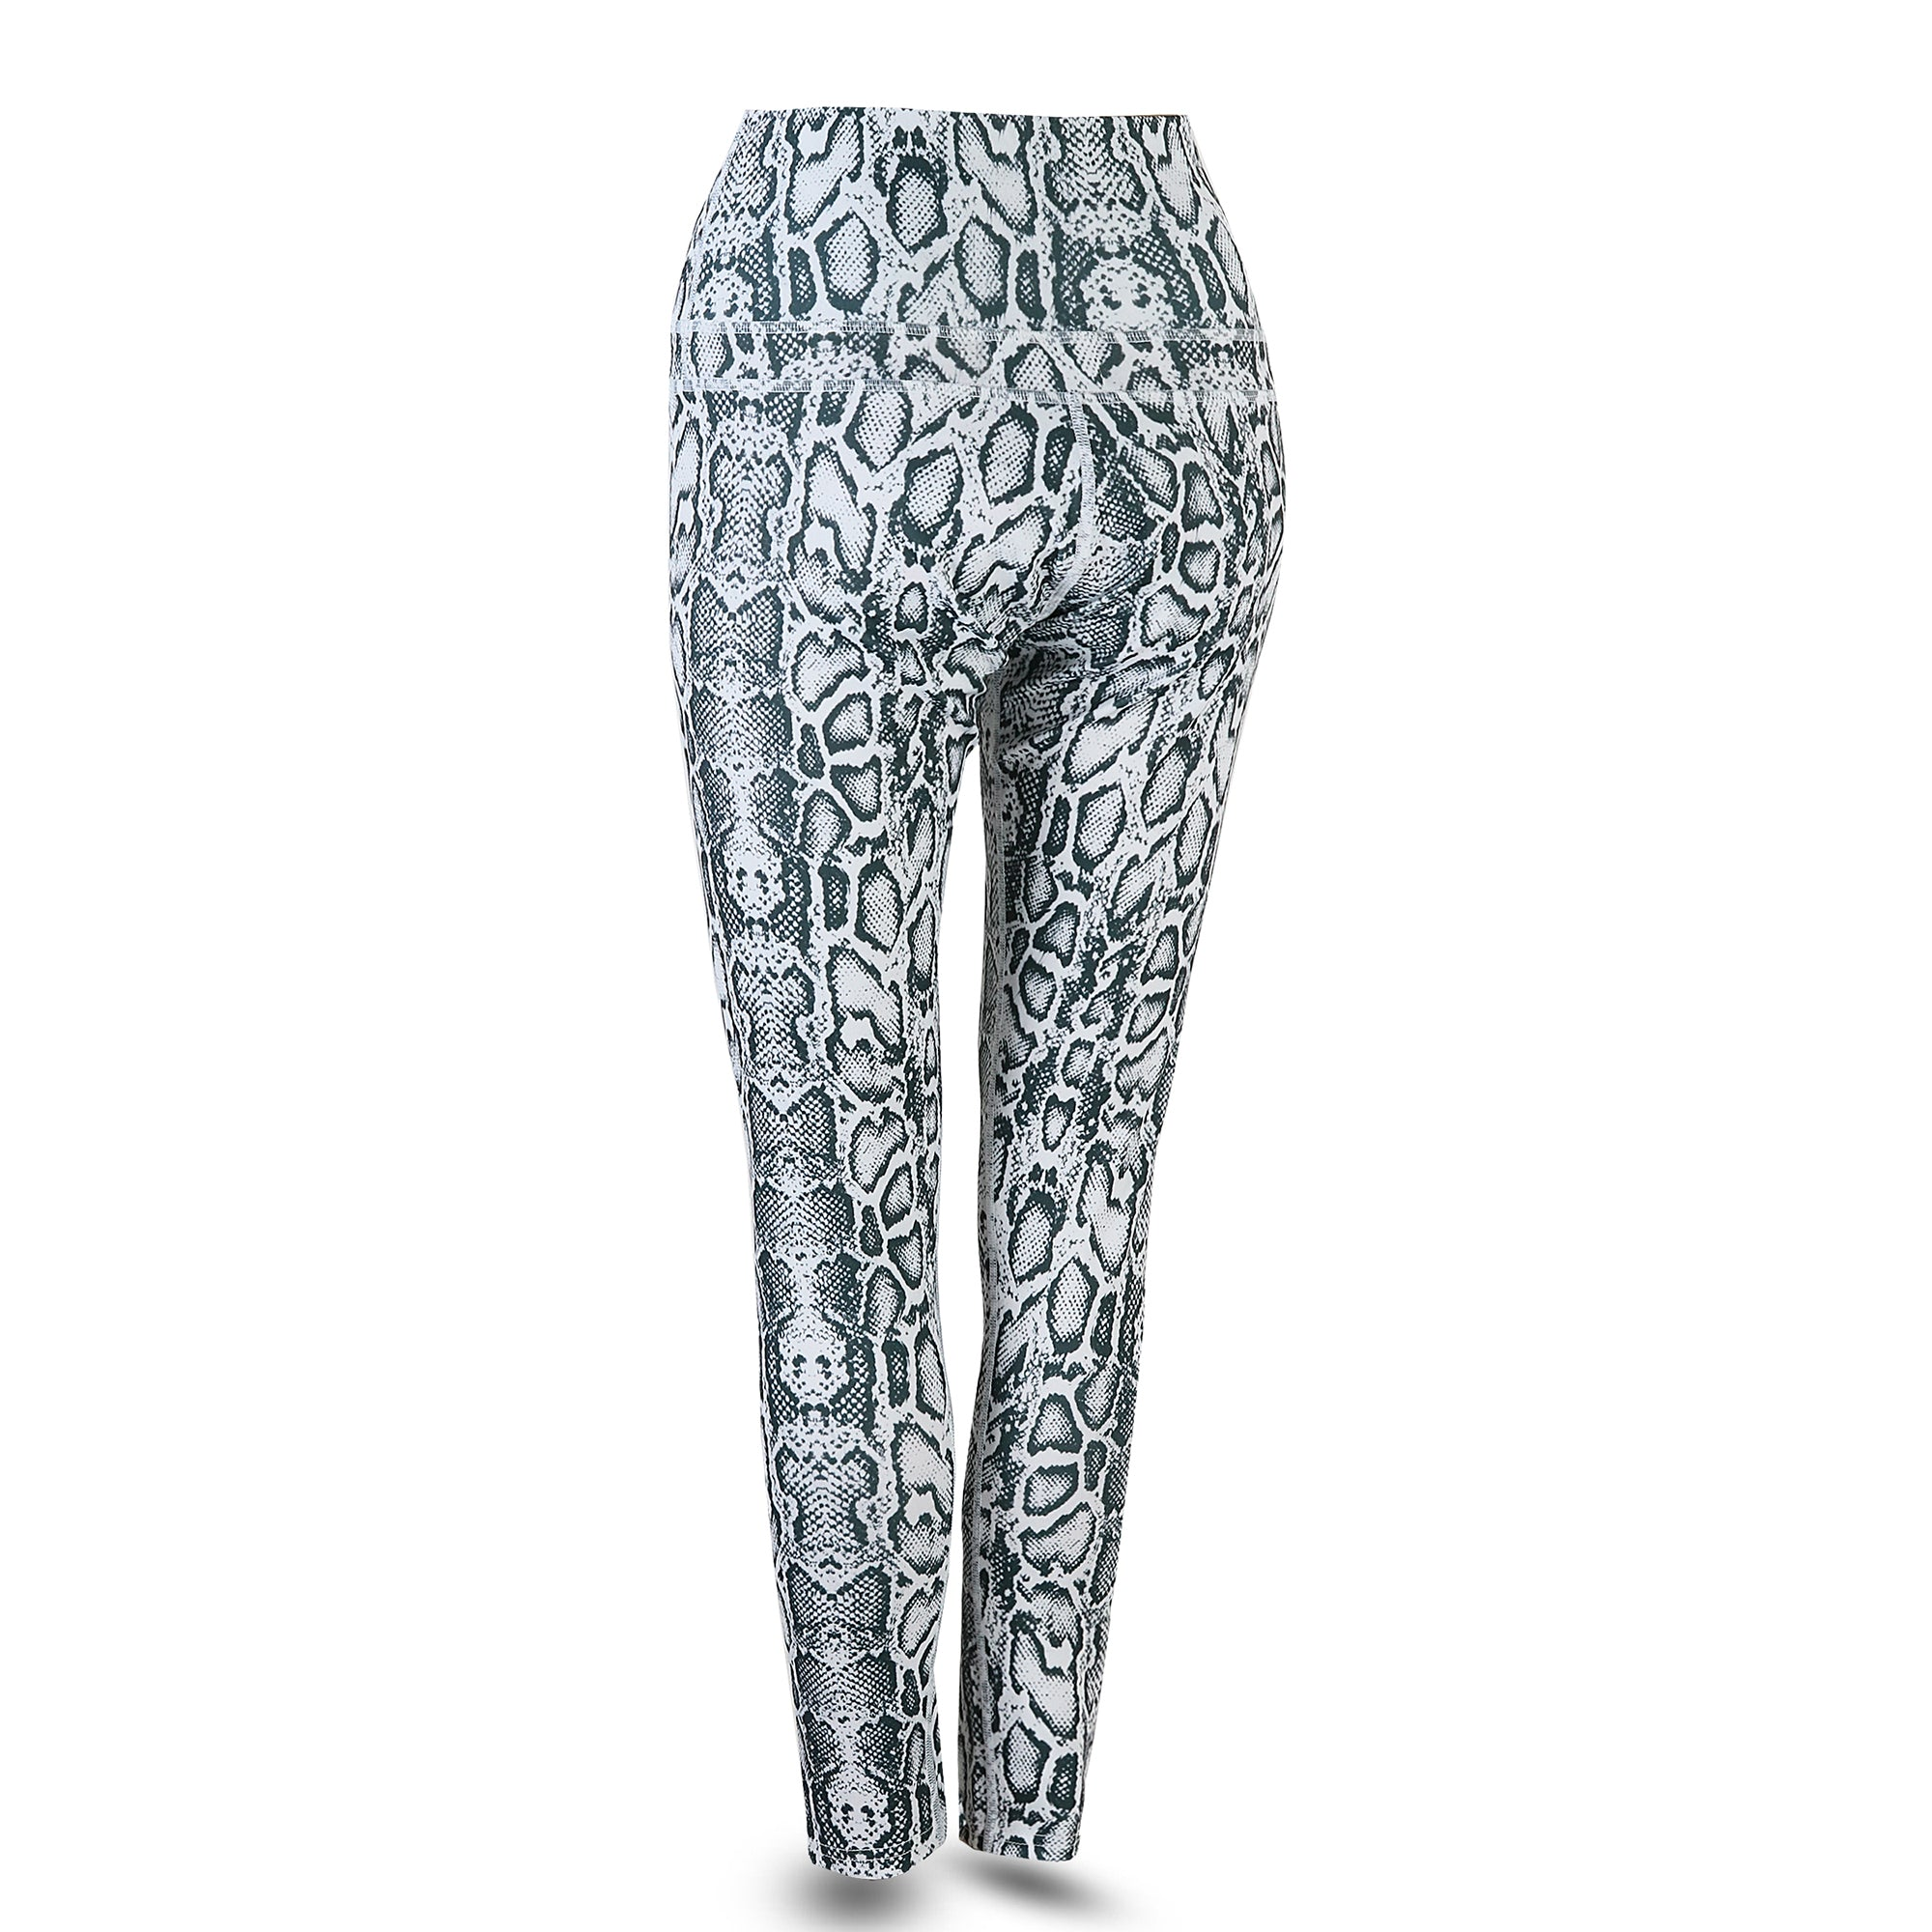 ***NEW** Snakeskin-Patterned Leggings